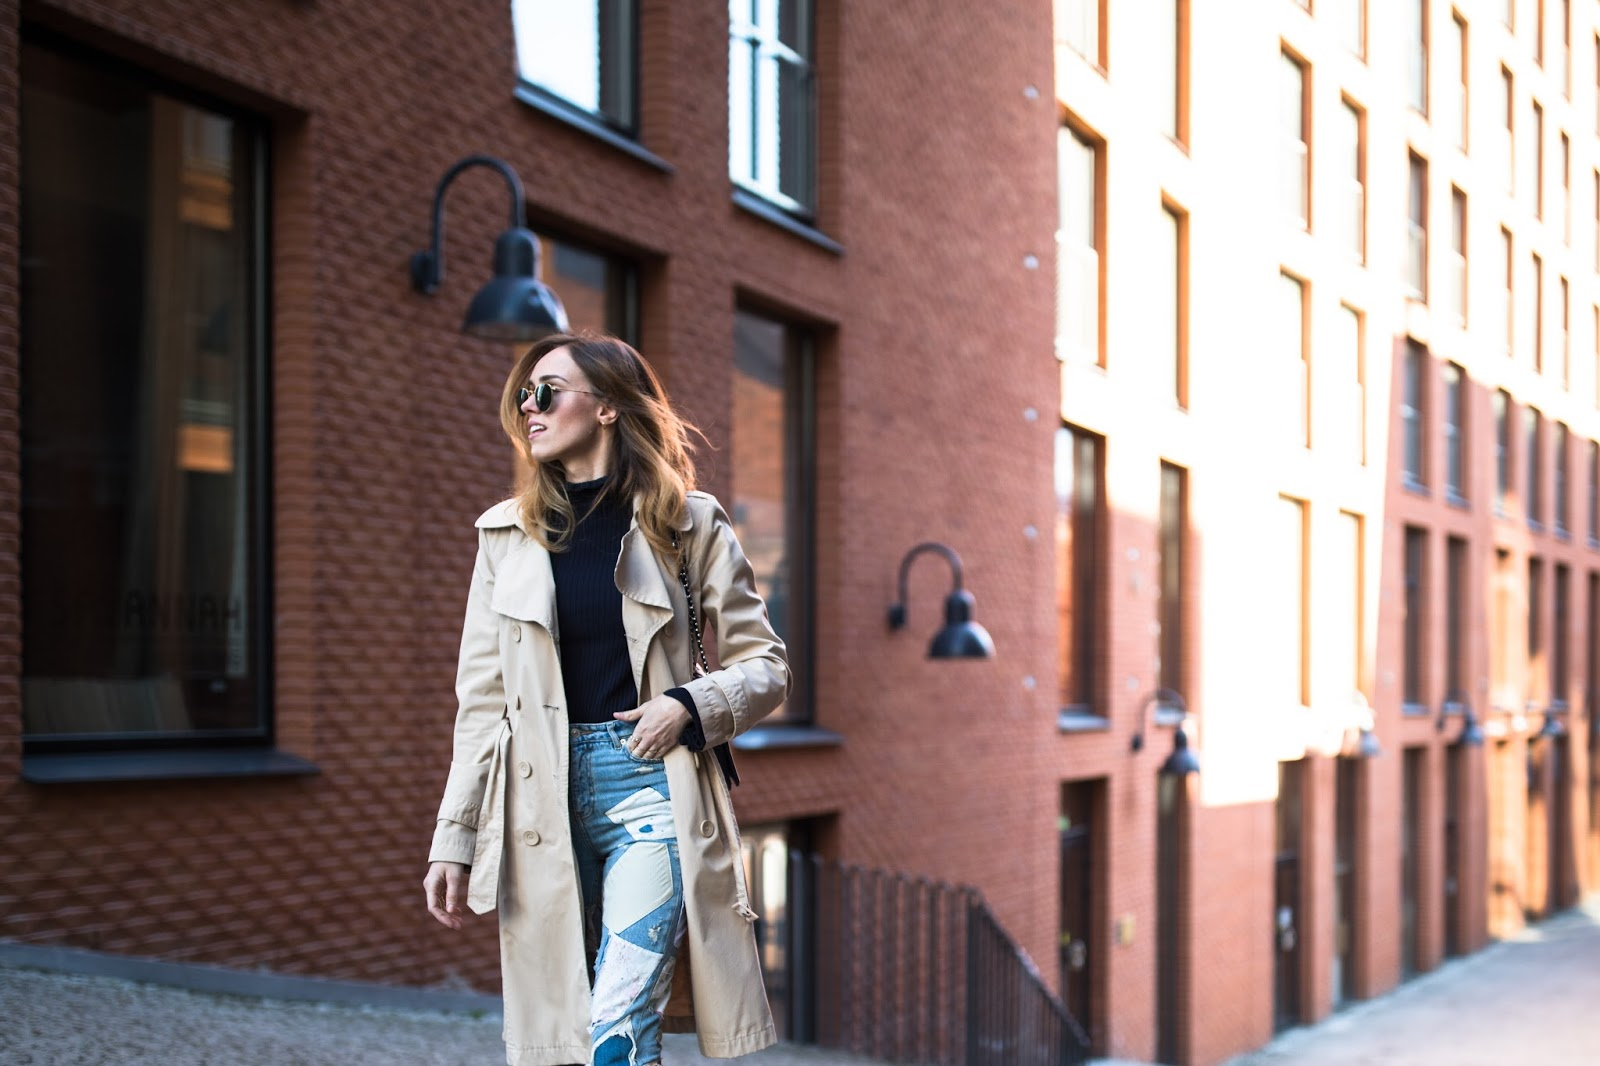 patch jeans outfit street style